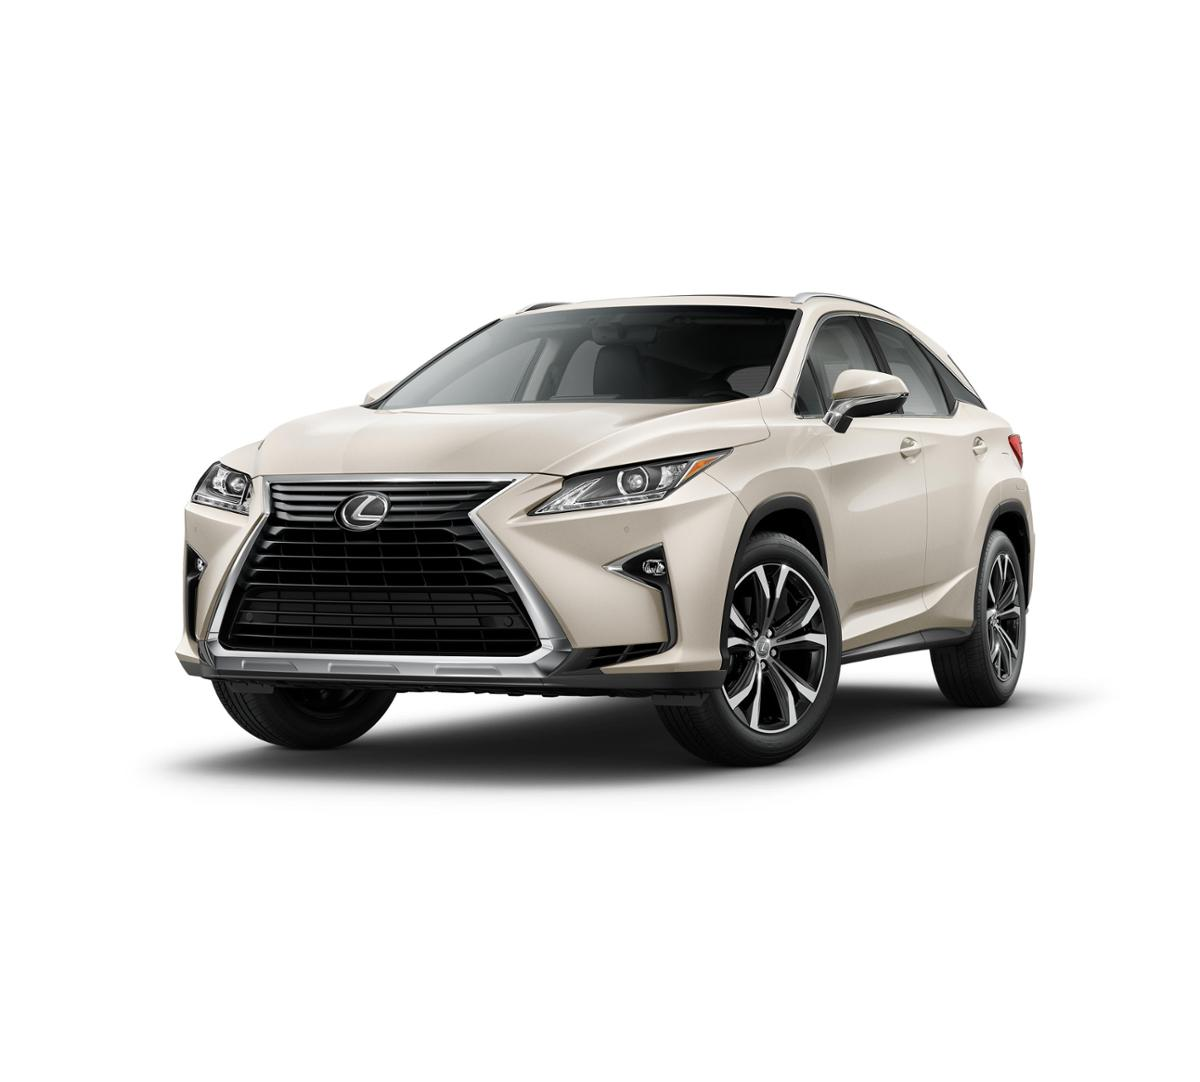 2017 Lexus RX 350 Vehicle Photo in Lakeway, TX 78734